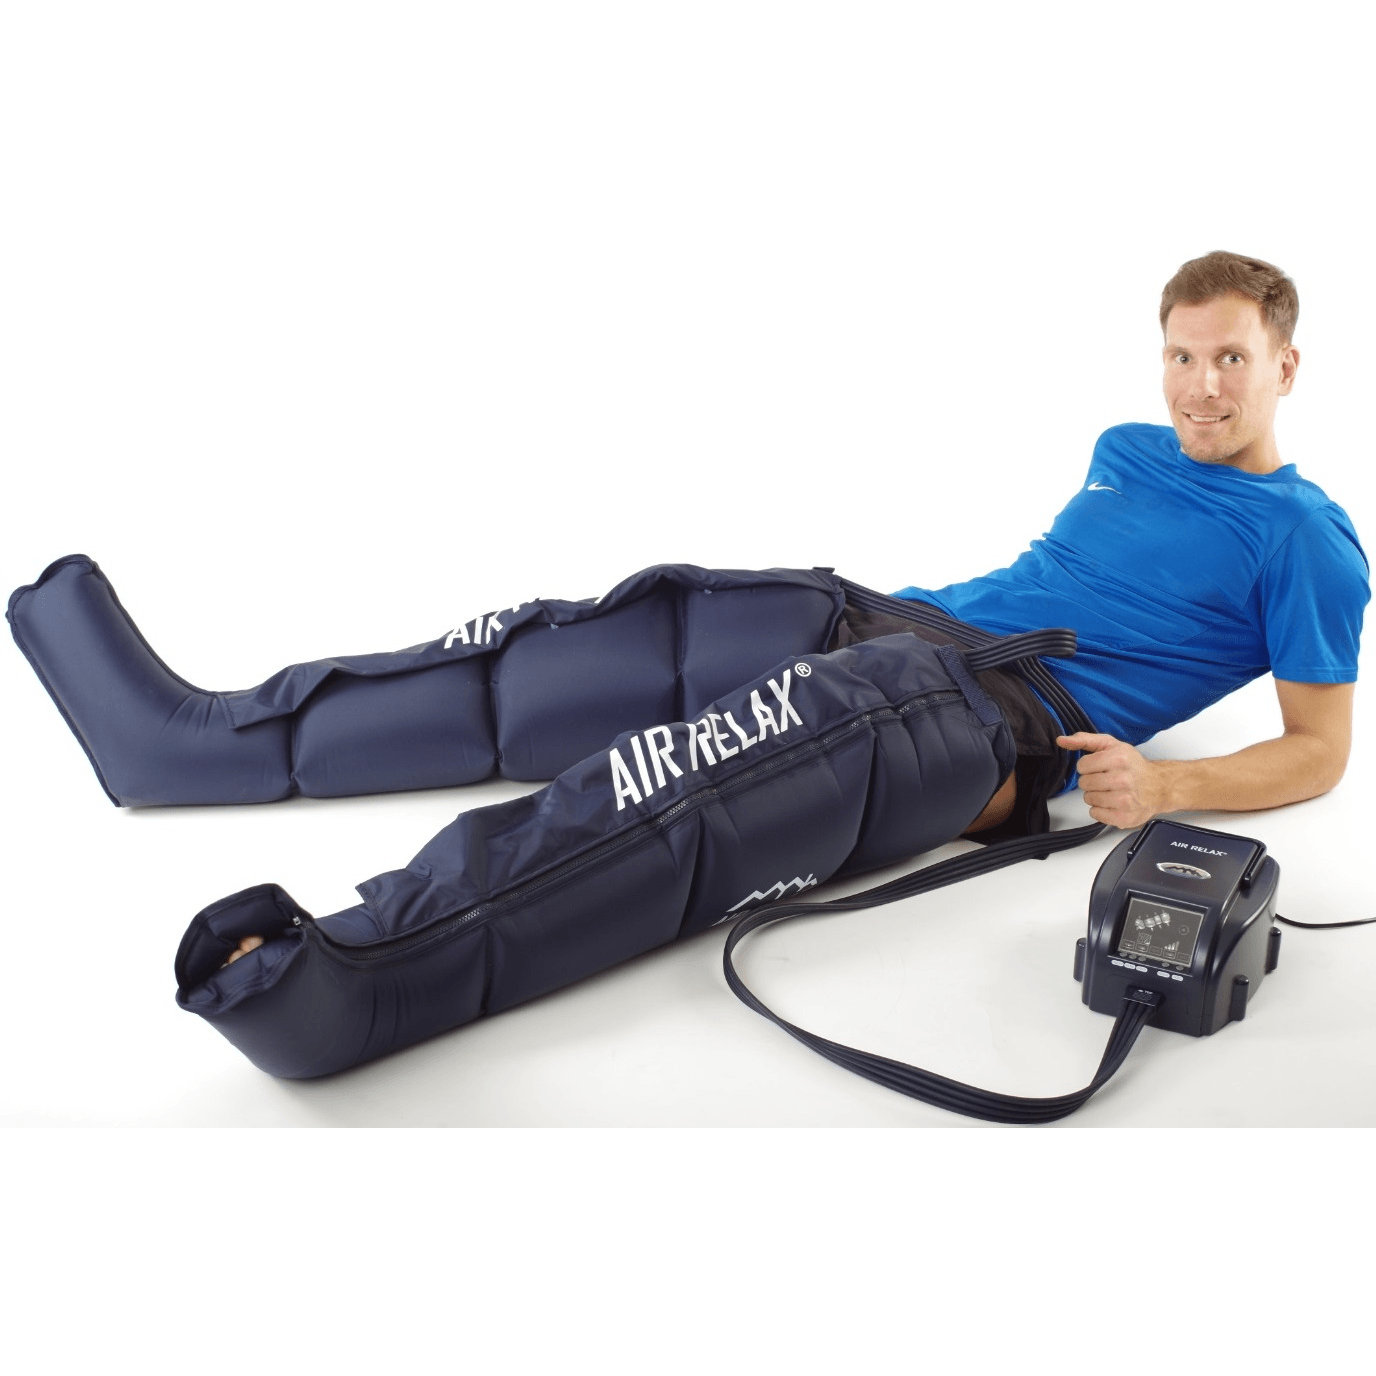 Air Relax Recovery Boots - Vain lahkeet - Hoitola Kuulas